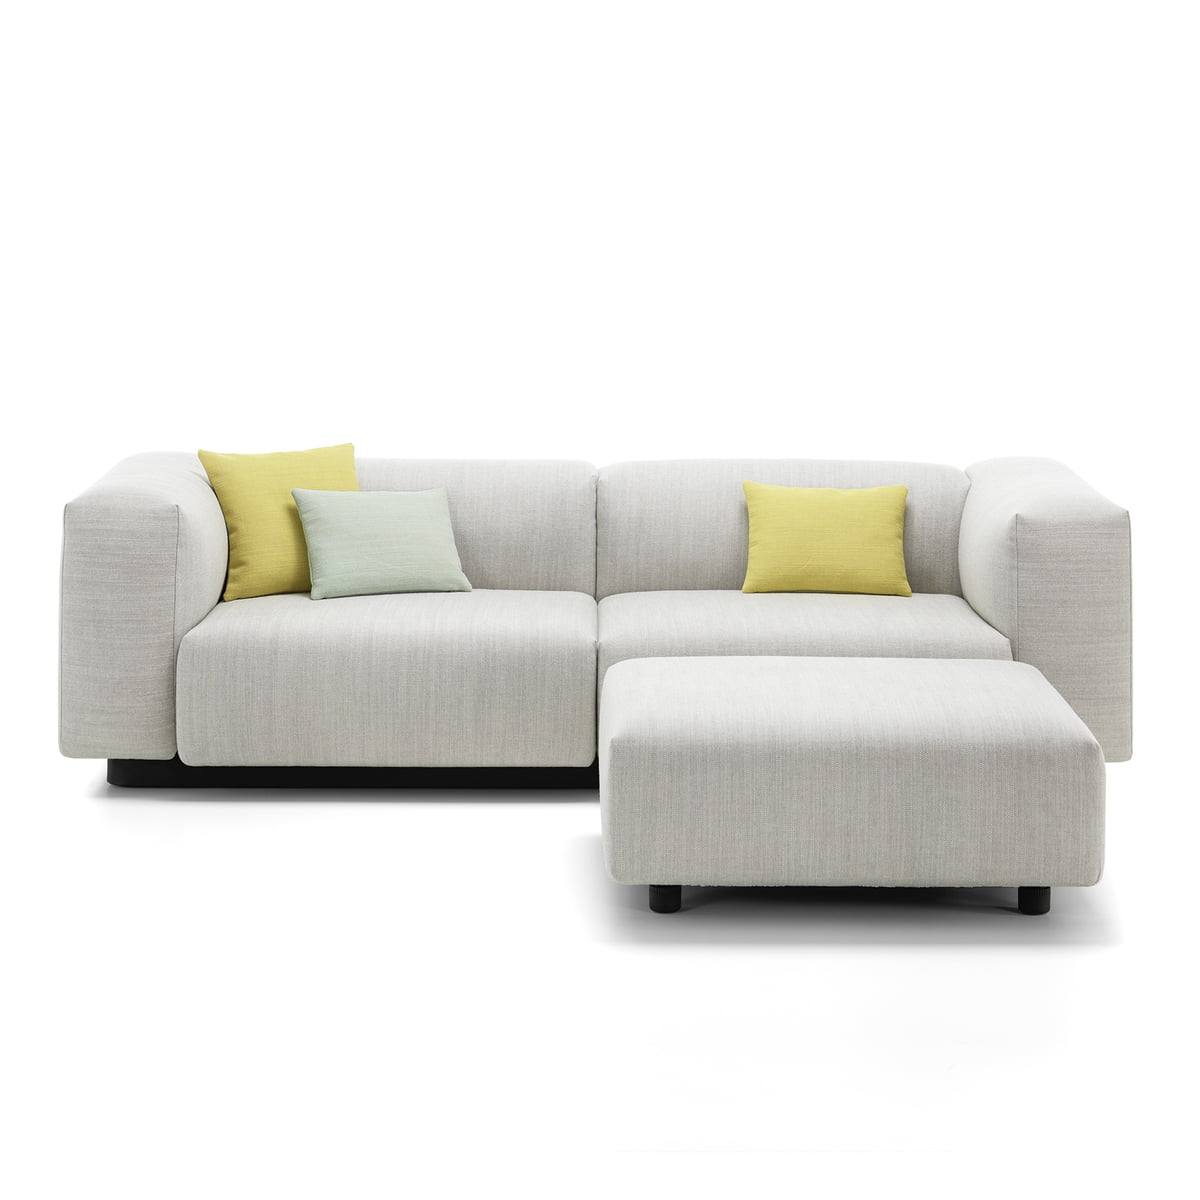 2 seater sofa with chaise furniture sofa sectionals chaise for 2 seater sofa with chaise